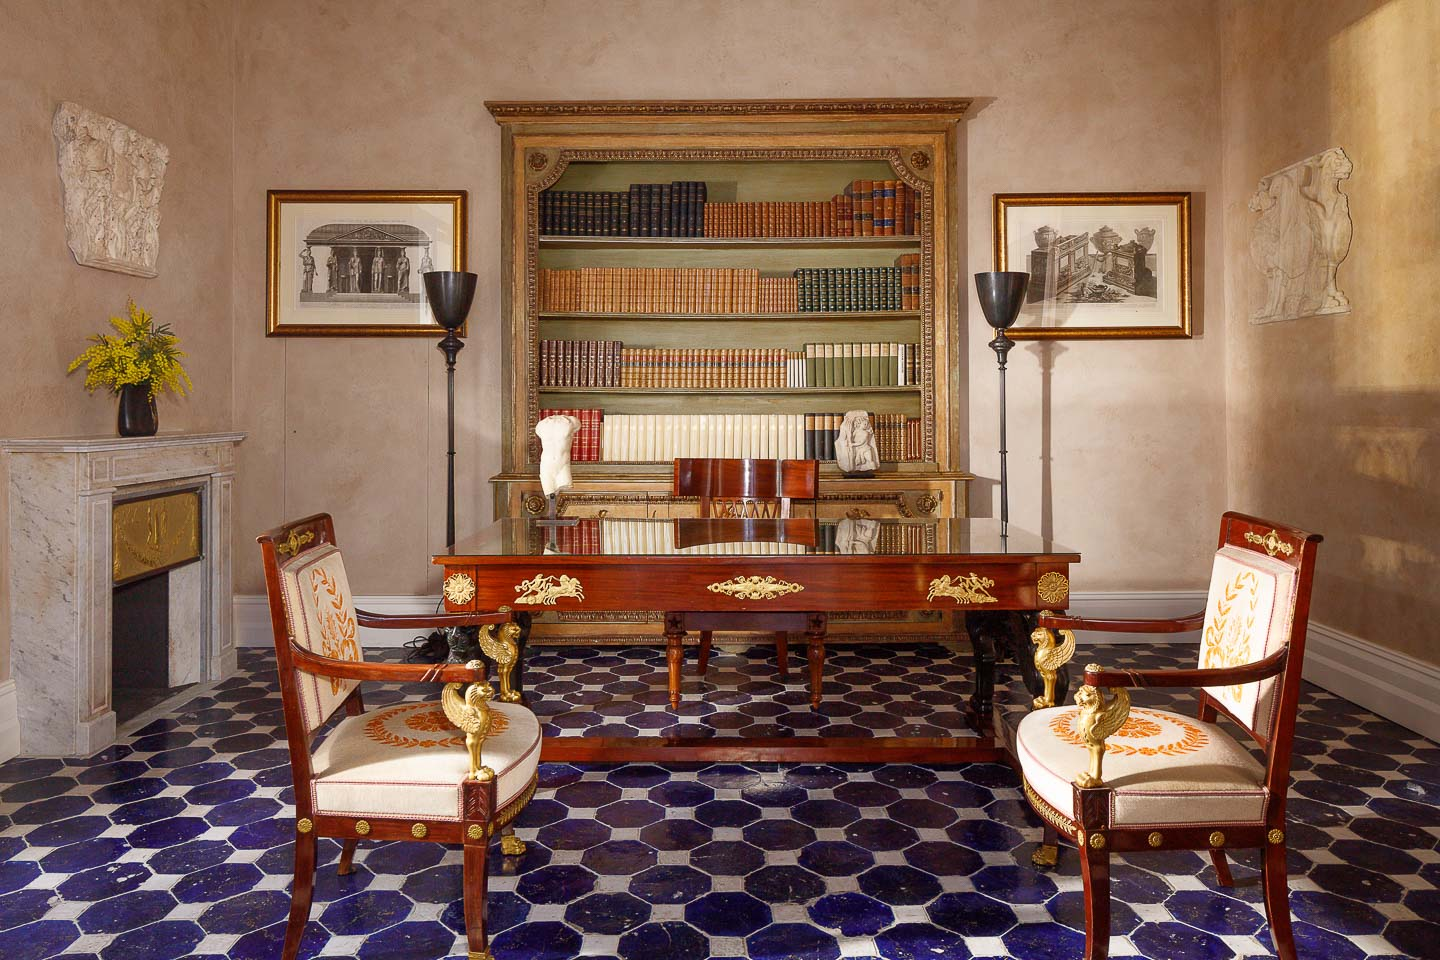 Villa Astor study room Benedetto Croce exquisite furniture antique collection Jacues Garciy exclusive accommodation guest stay summer Italian holiday vacation